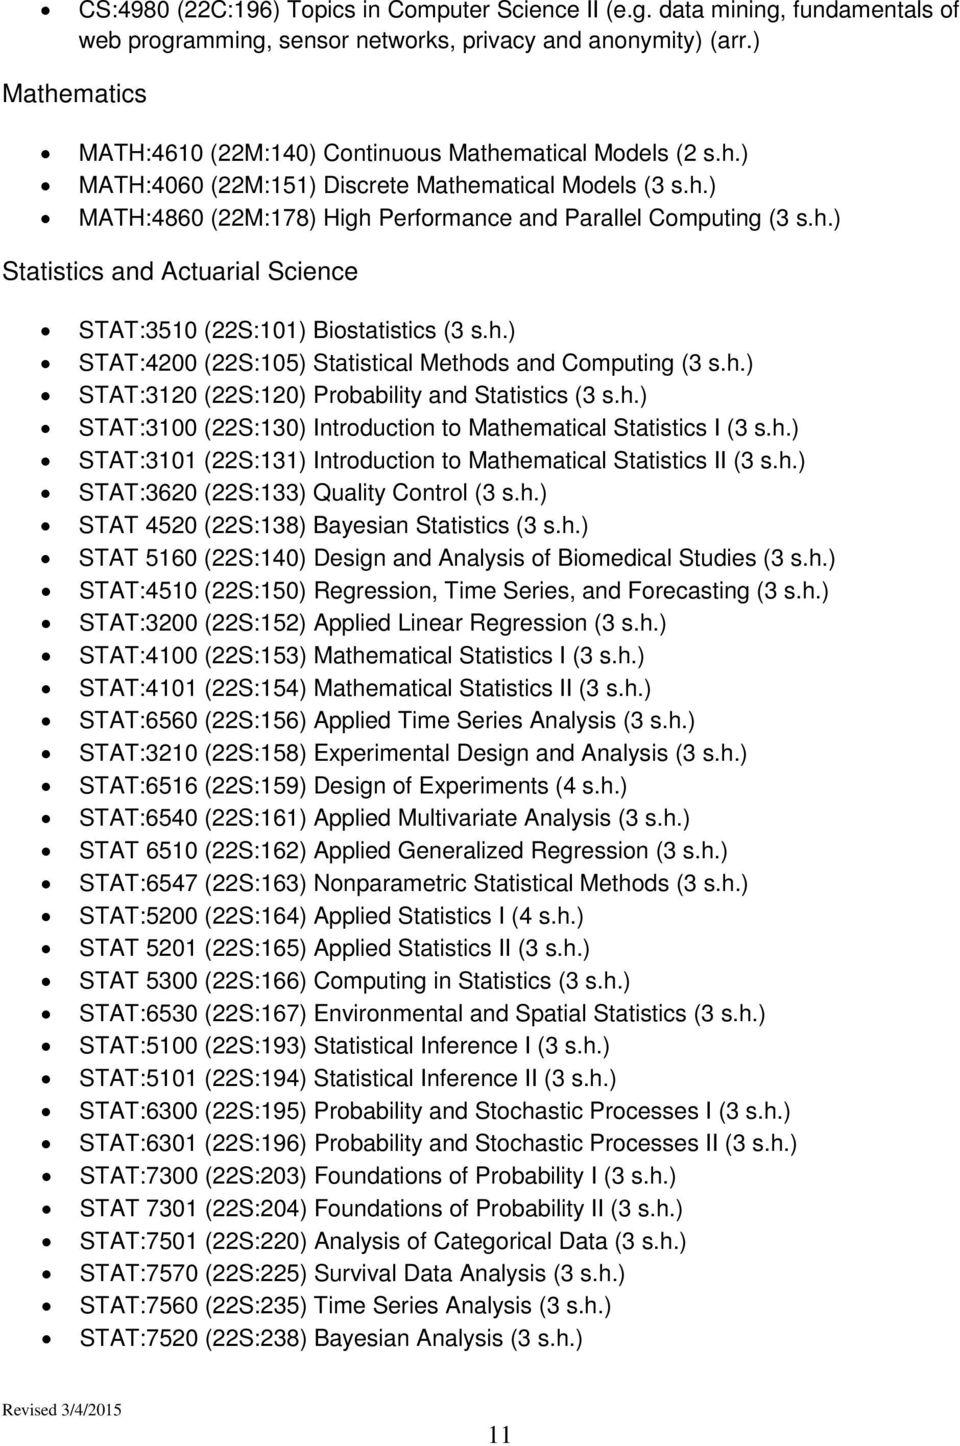 h.) STAT:4200 (22S:105) Statistical Methods and Computing (3 s.h.) STAT:3120 (22S:120) Probability and Statistics (3 s.h.) STAT:3100 (22S:130) Introduction to Mathematical Statistics I (3 s.h.) STAT:3101 (22S:131) Introduction to Mathematical Statistics II (3 s.